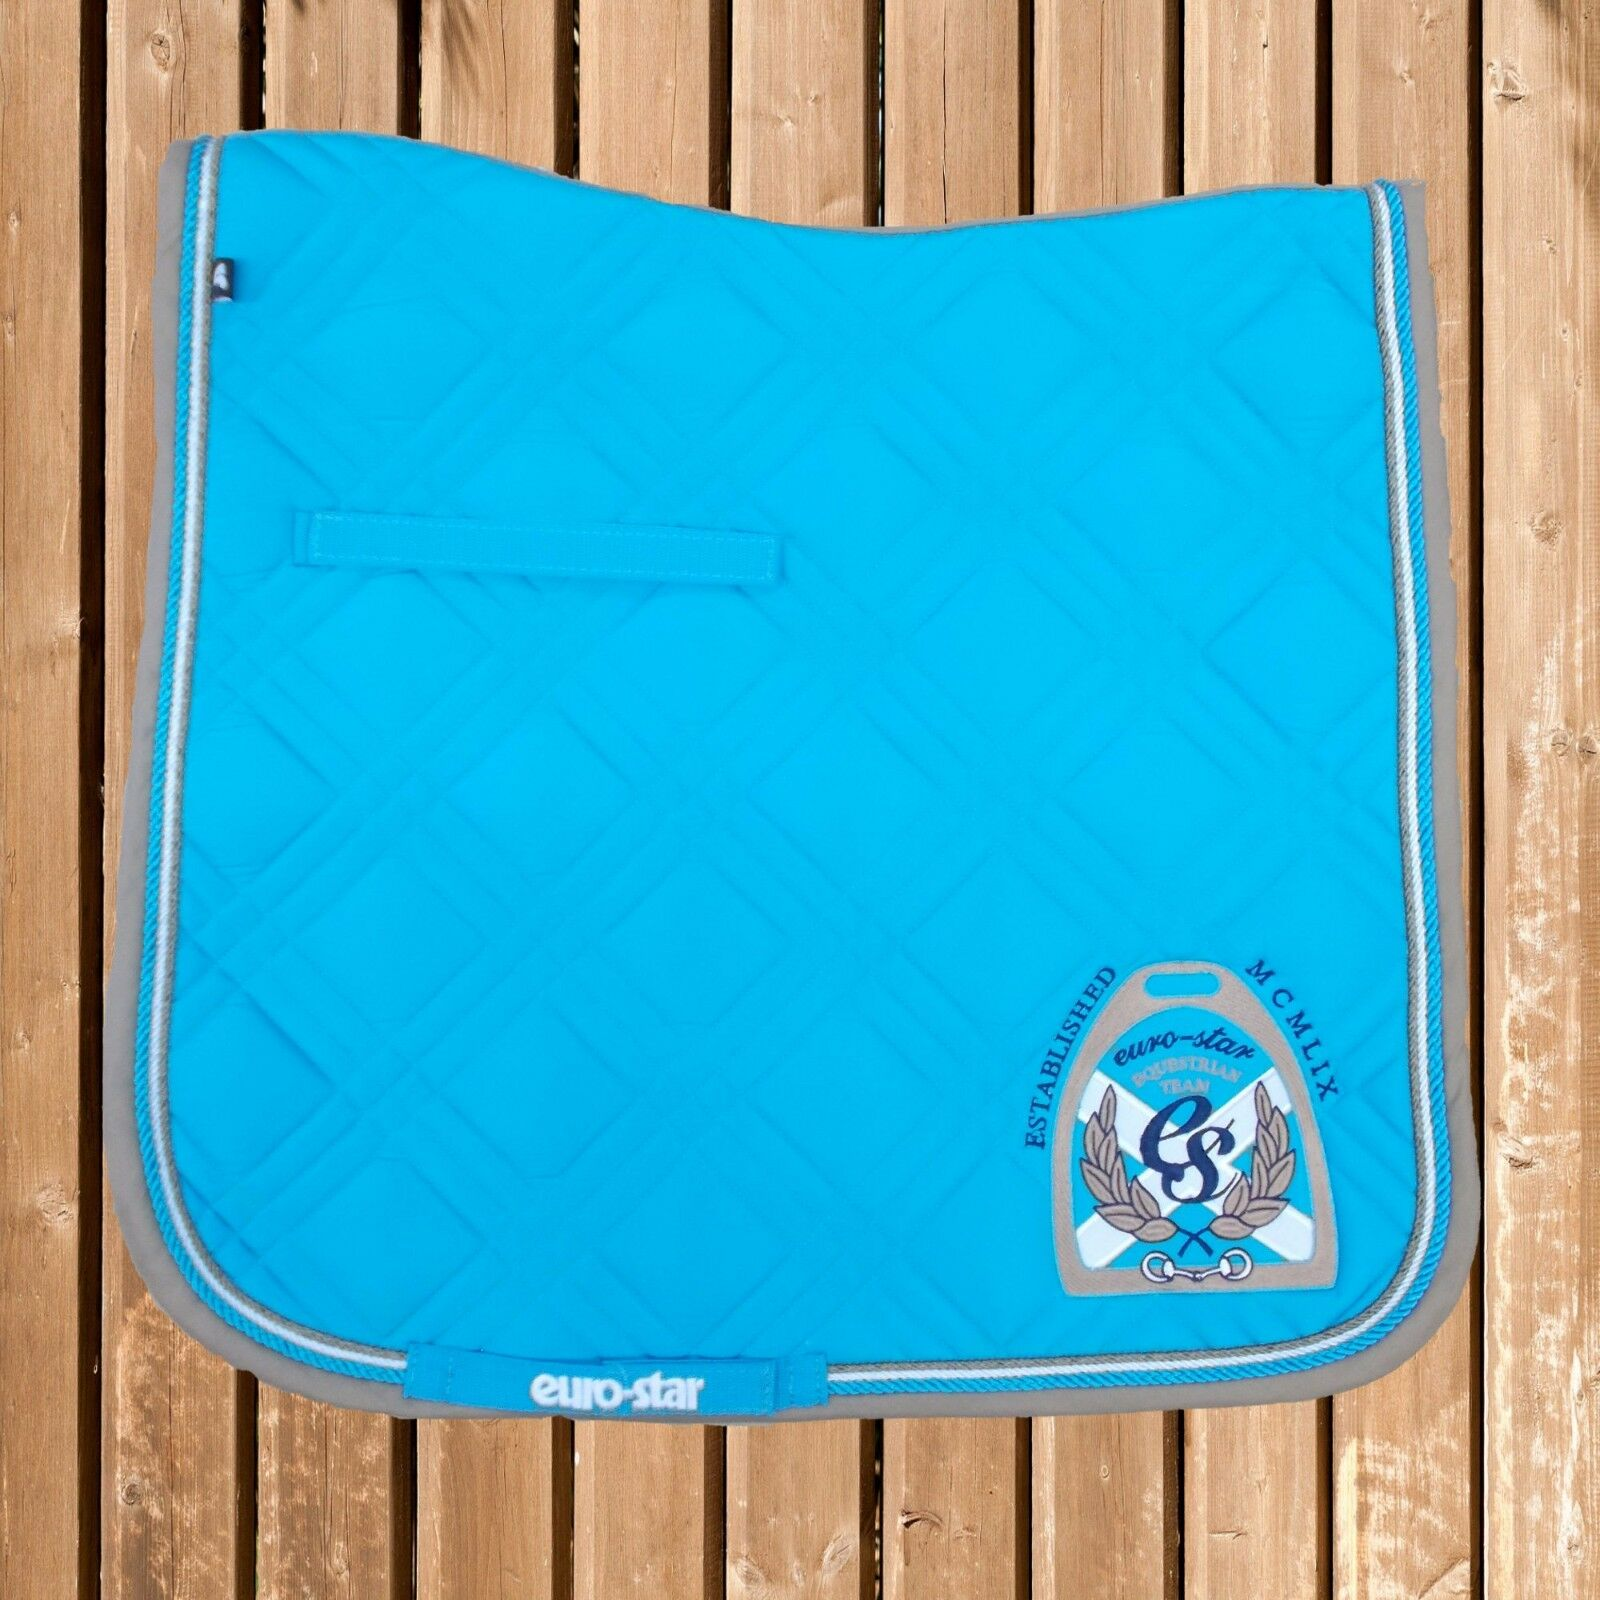 Euro Star Saddle Pad Excellent S, Turquoise, Euro Star Saddle Blanket, Saddle Pad